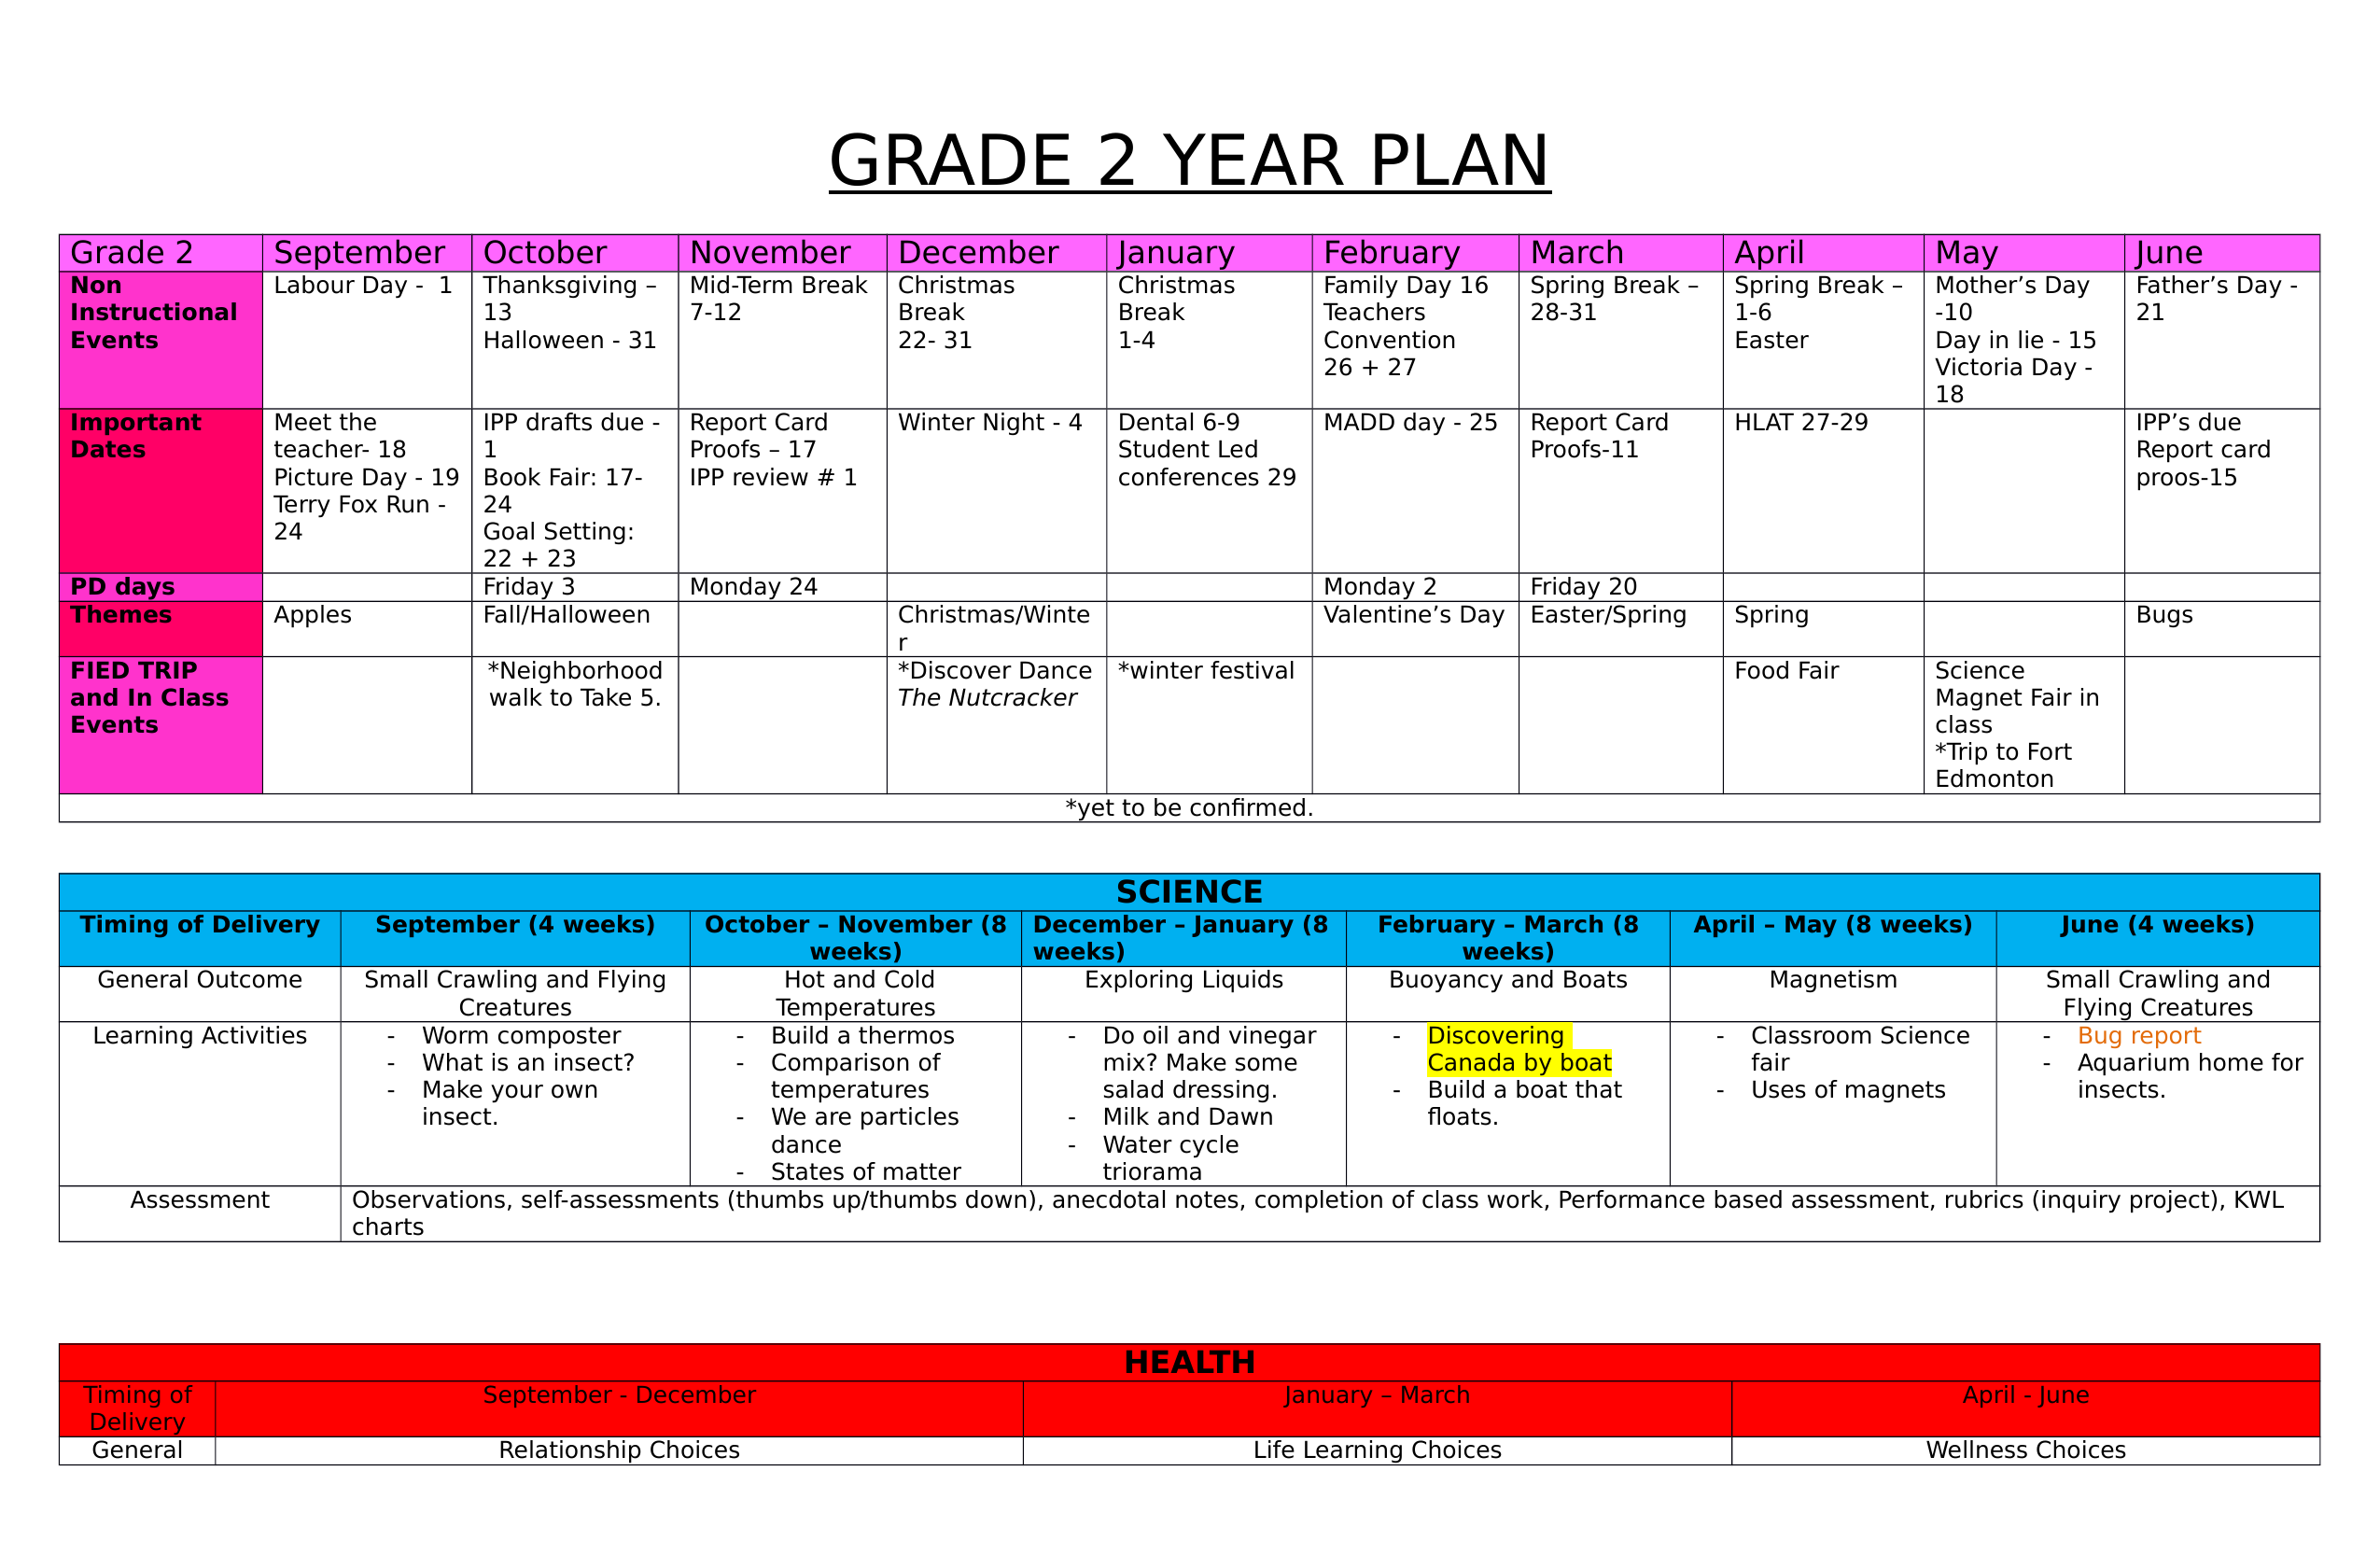 Grade 2 Year Plan Resource Preview